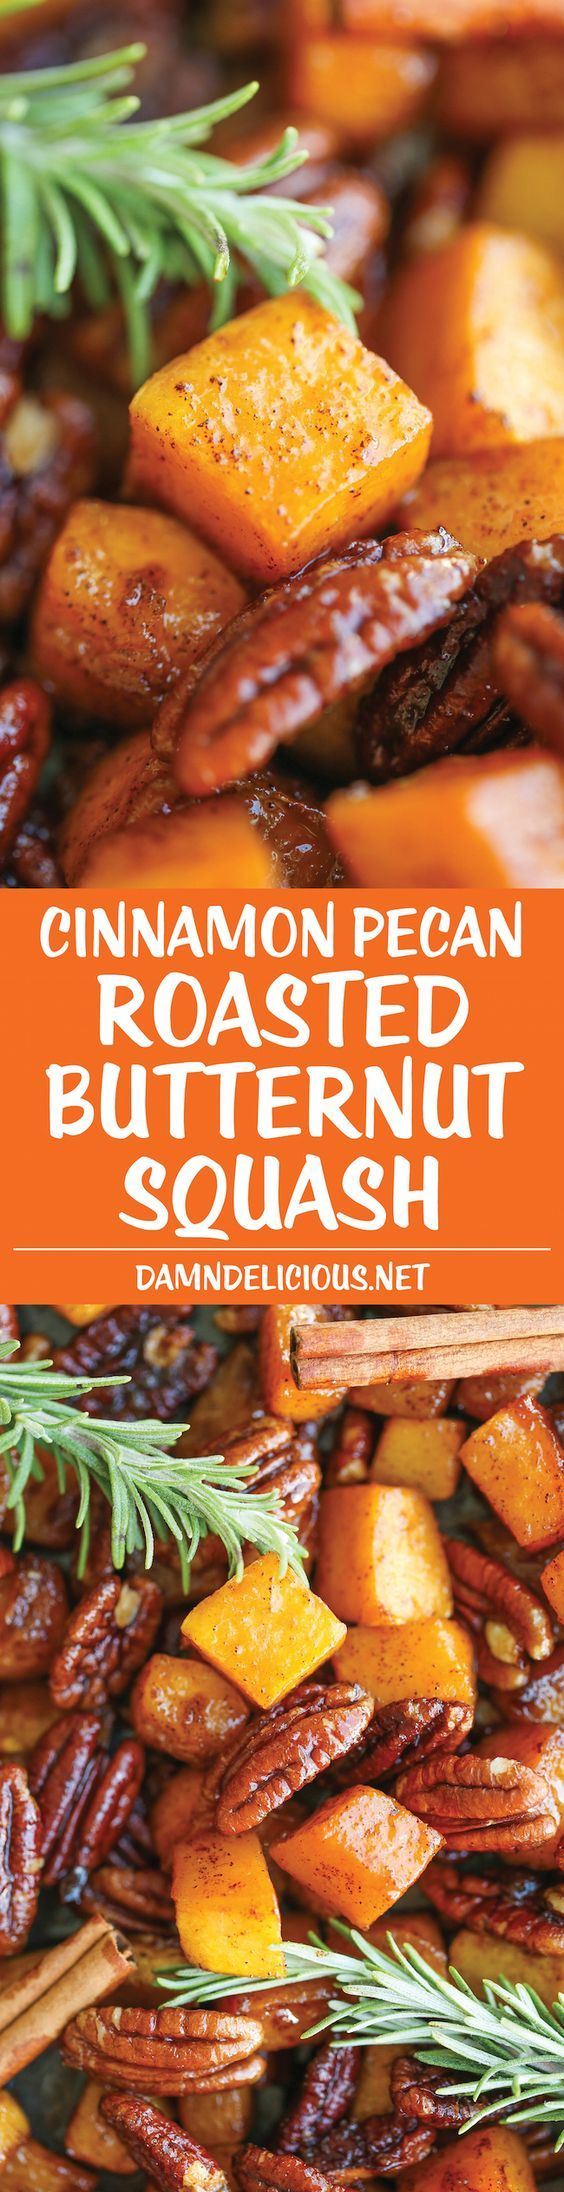 Cinnamon Pecan Roasted Butternut Squash - Easy simple sweet and just so stinking good! And you can serve this with anything and everything!